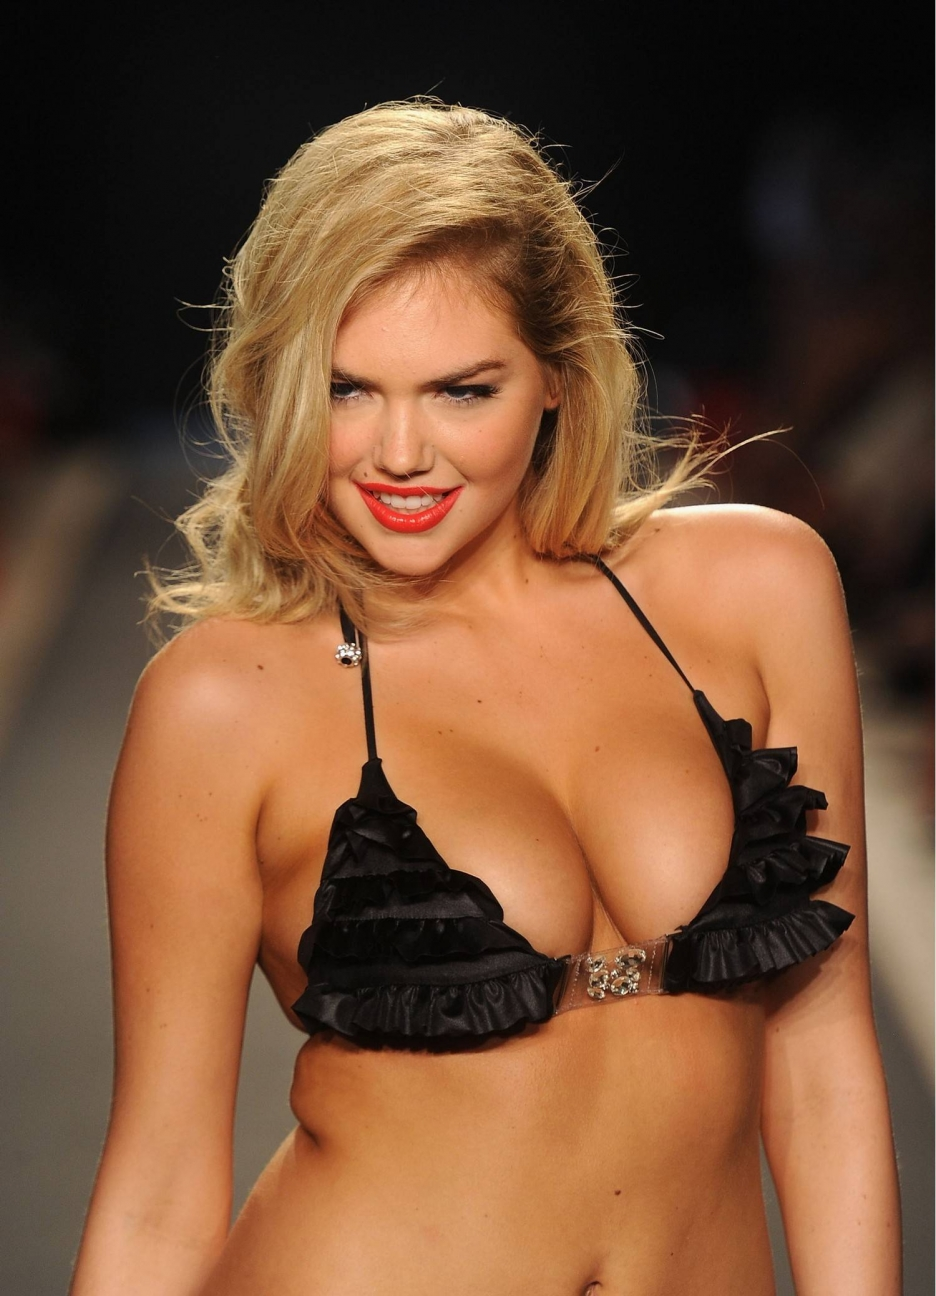 Kate Upton Bouncing Boobs For 10 Hours!